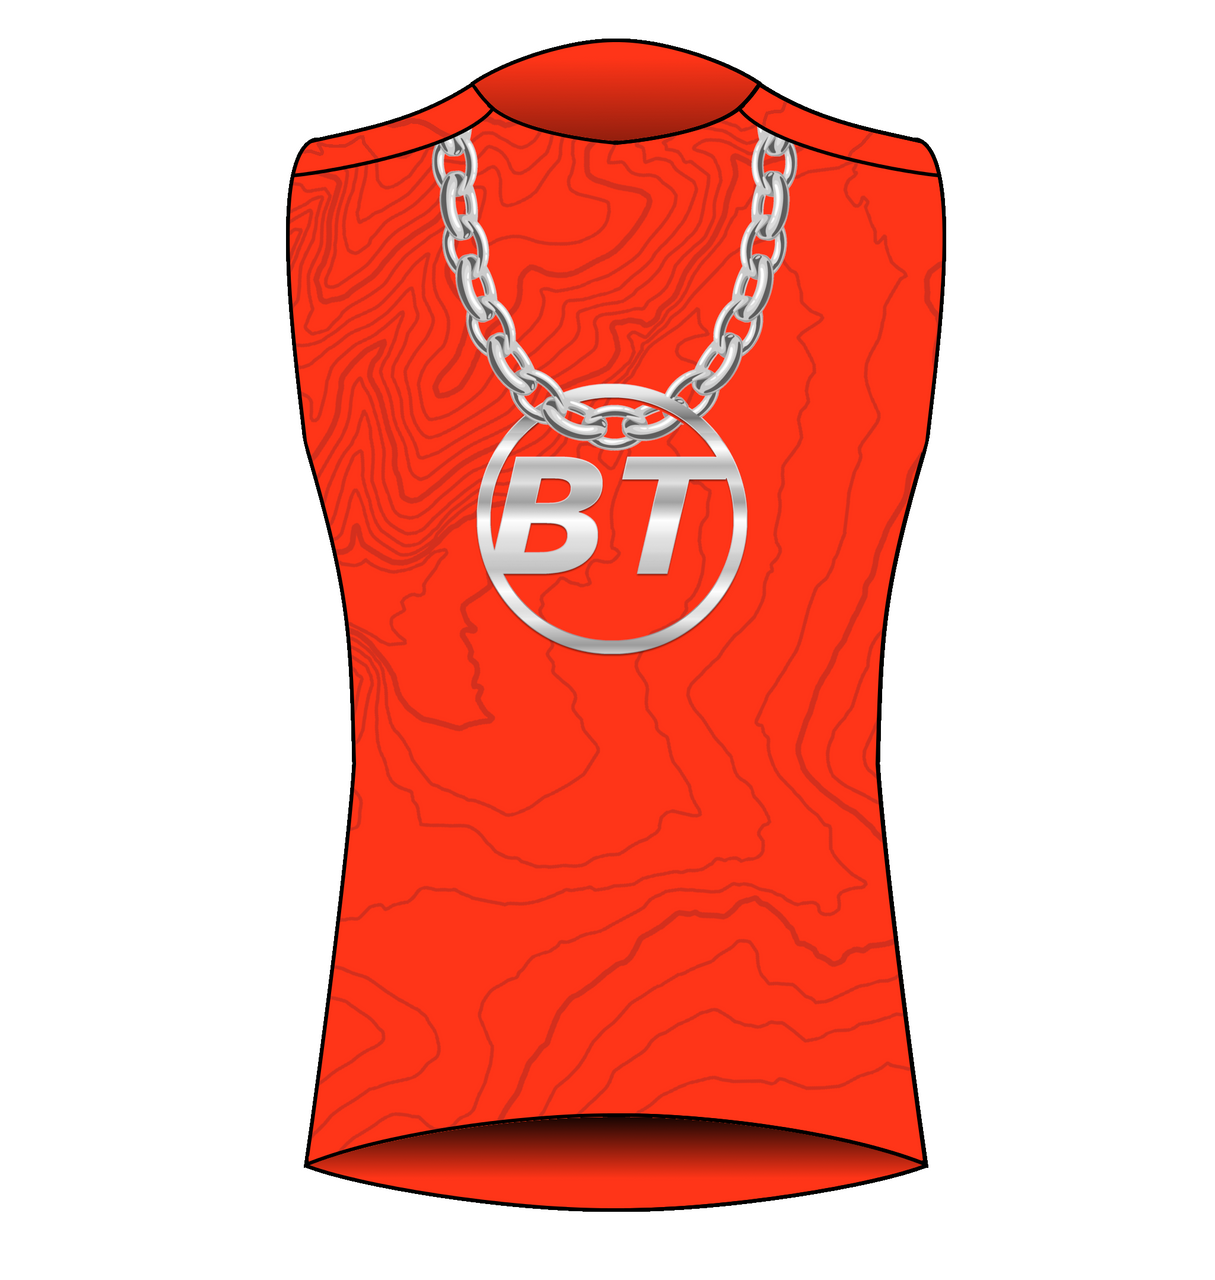 BT Athletic Apparel Chapter 3: Base Layer